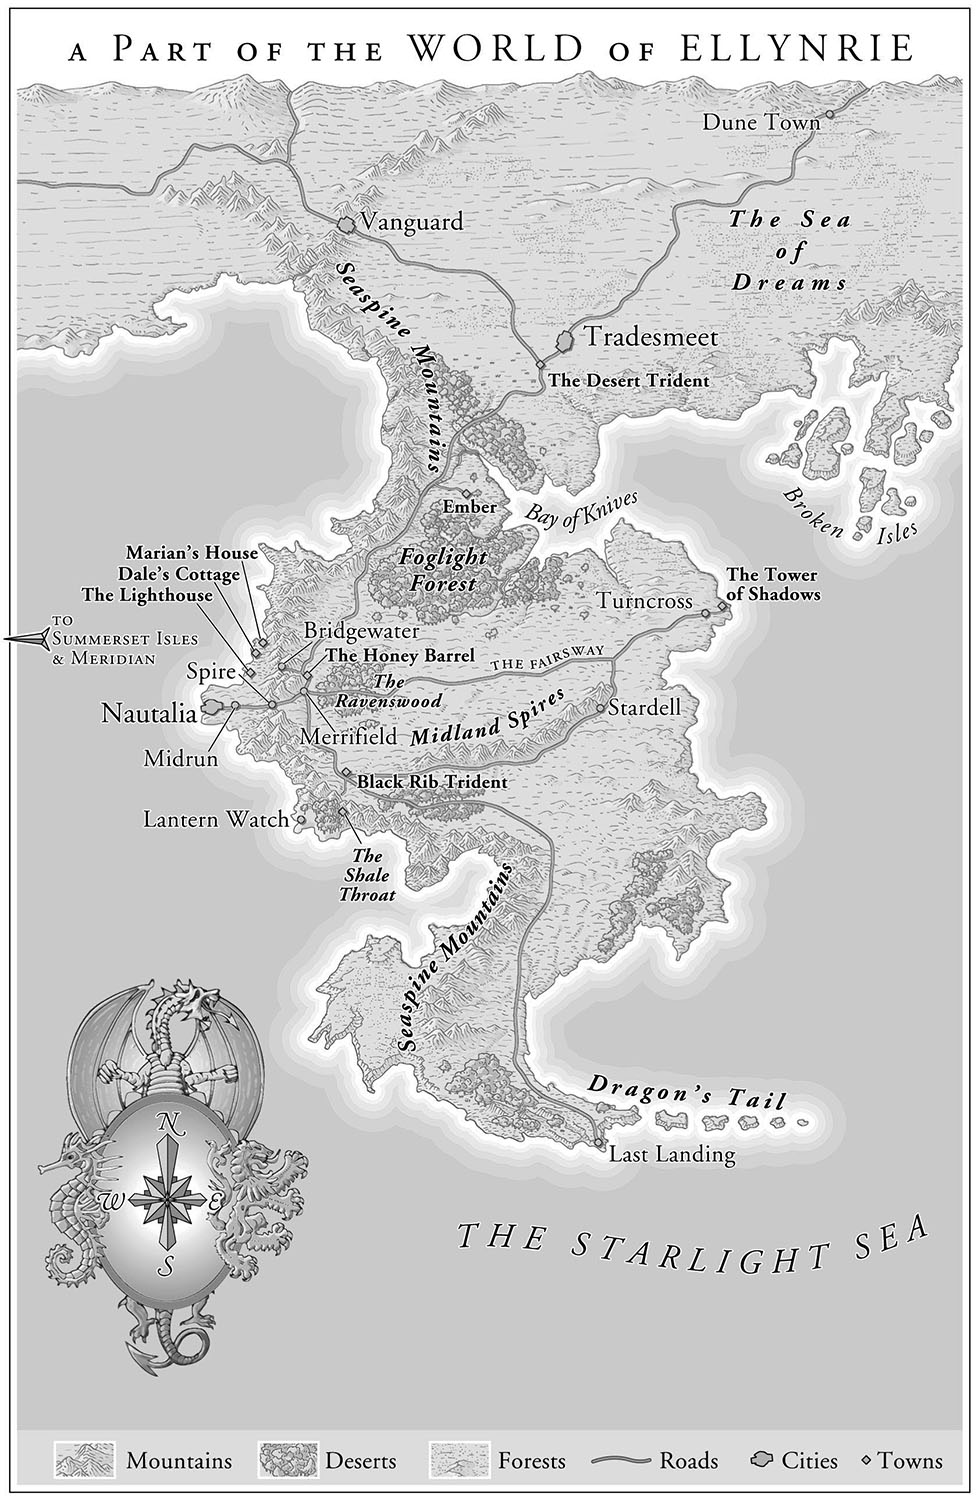 For    Tower of Shadows,      by Drew C. Bowling   (Del Rey, 2006).    Another imaginary world, developed from the author's sketch.   Map copyright © Drew C. Bowling.